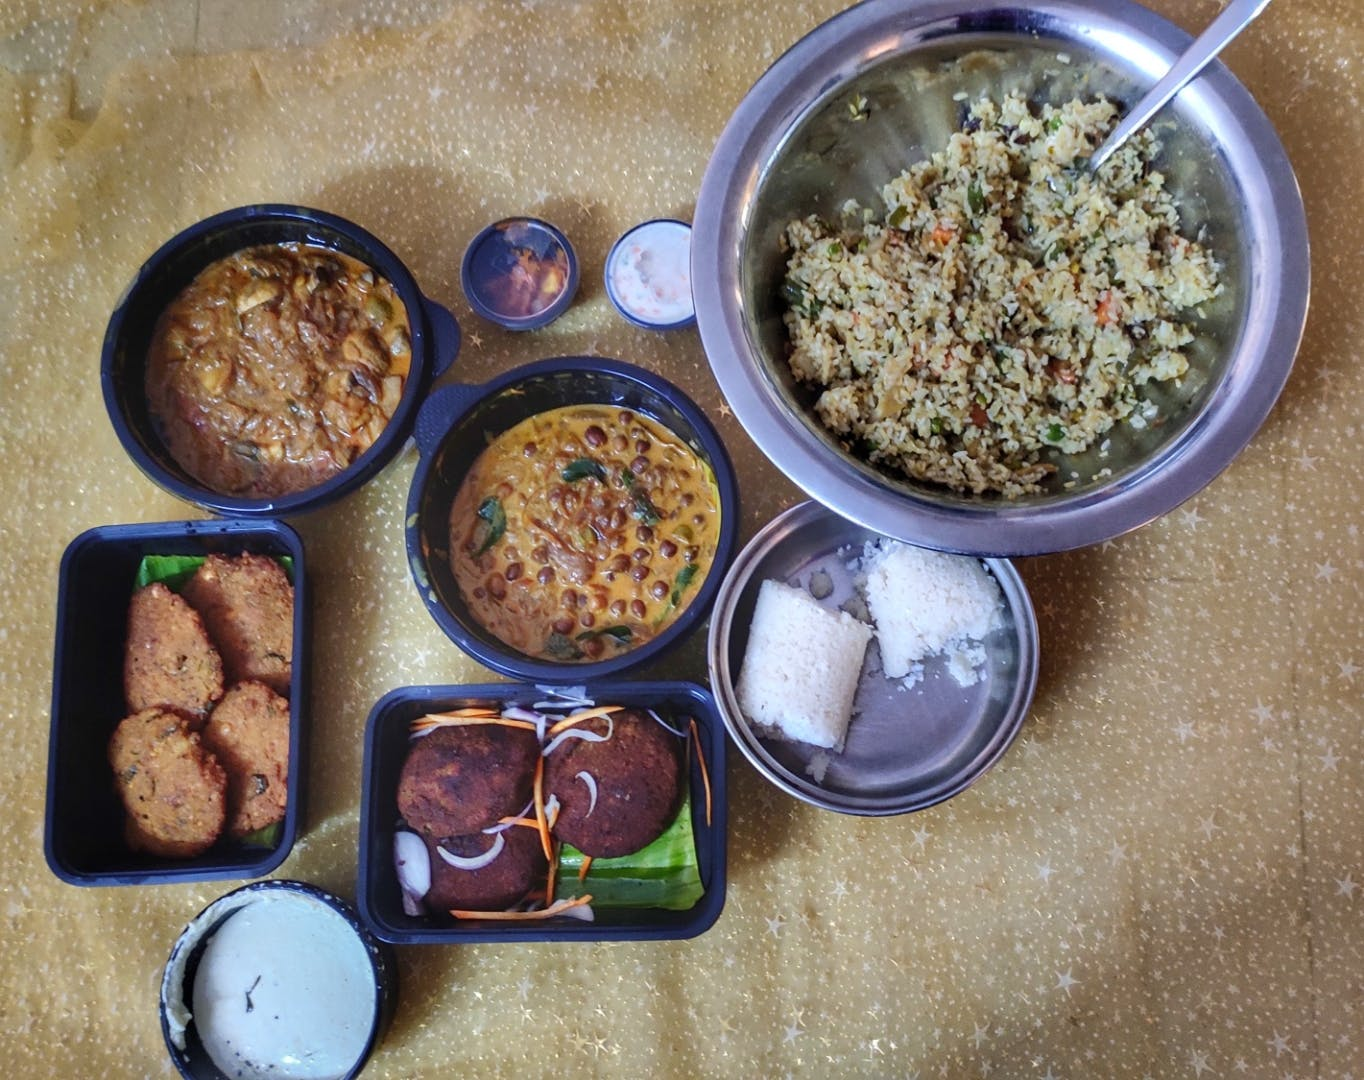 Dish,Food,Cuisine,Meal,Ingredient,Lunch,Vegetarian food,Stuffing,Recipe,Produce